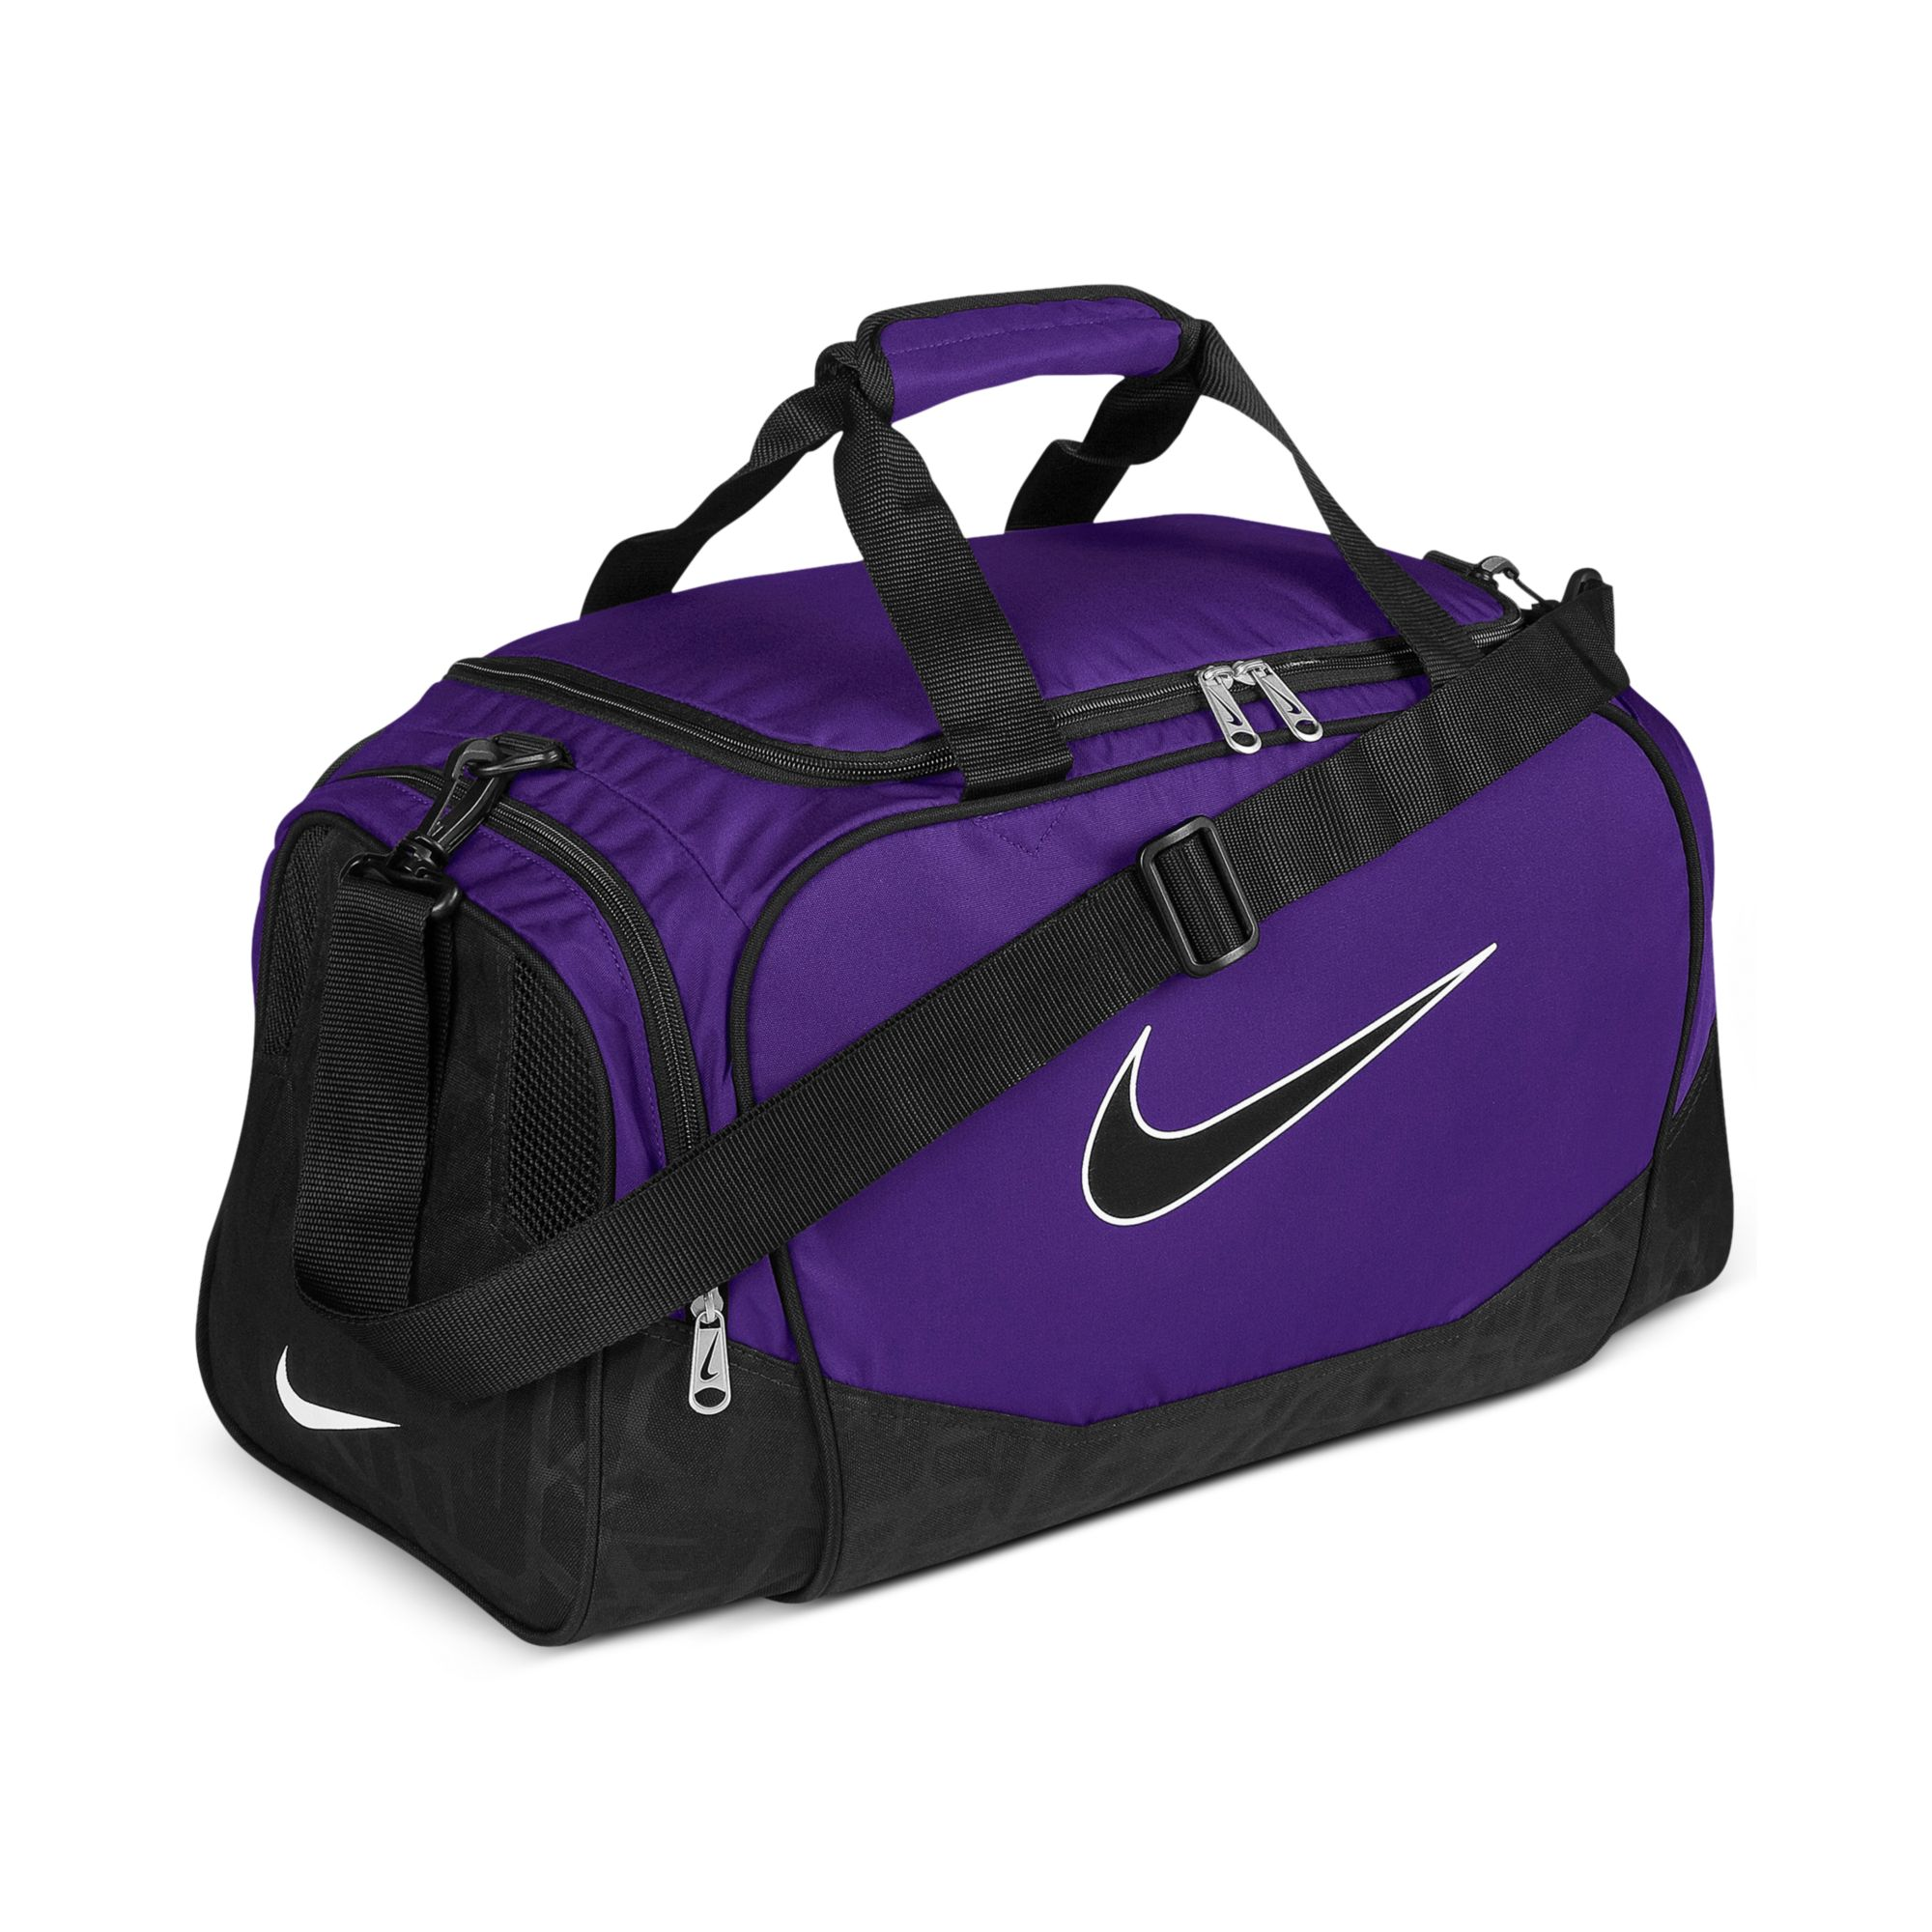 Lyst - Nike Small Duffle Bag in Purple for Men cbb76abc0e31e